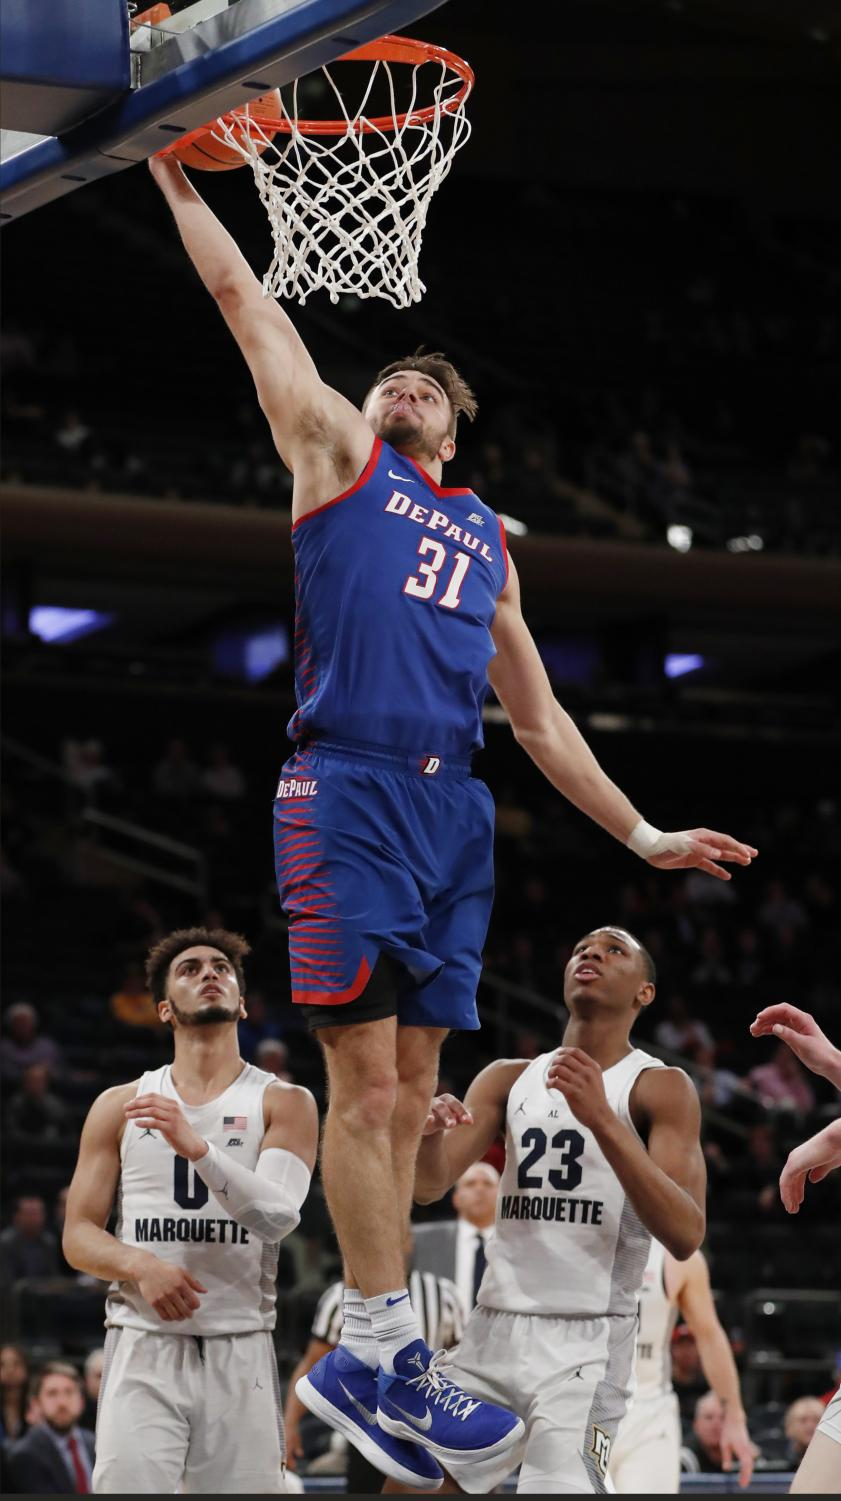 Junior guard Max Strus throws down a dunk in DePaul's first round loss in the Big East Tournament at Madison Square Garden.  (Kathy Willens | AP)